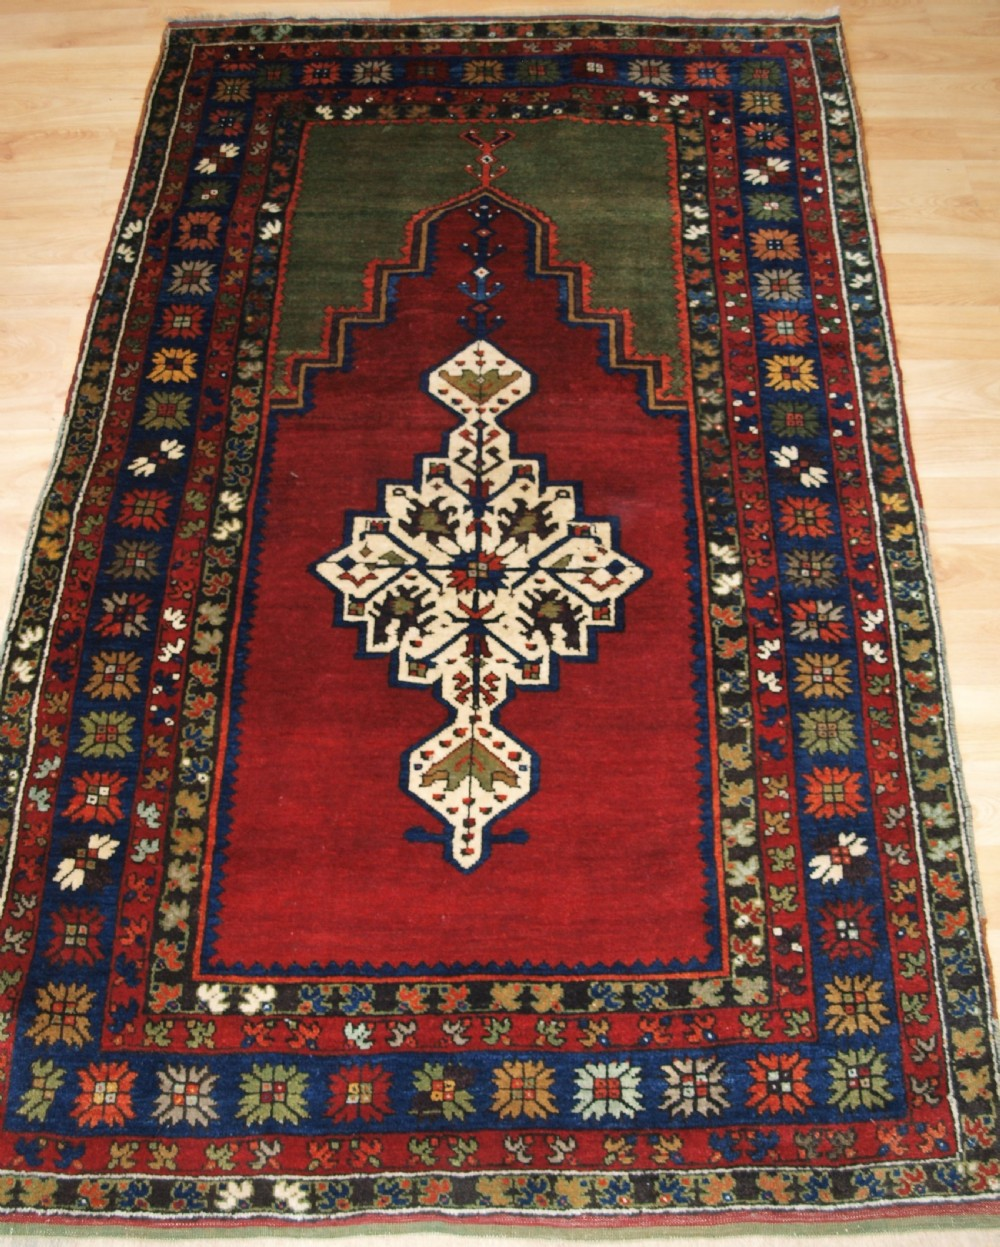 antique turkish prayer rug isiklar village konya region circa 1900